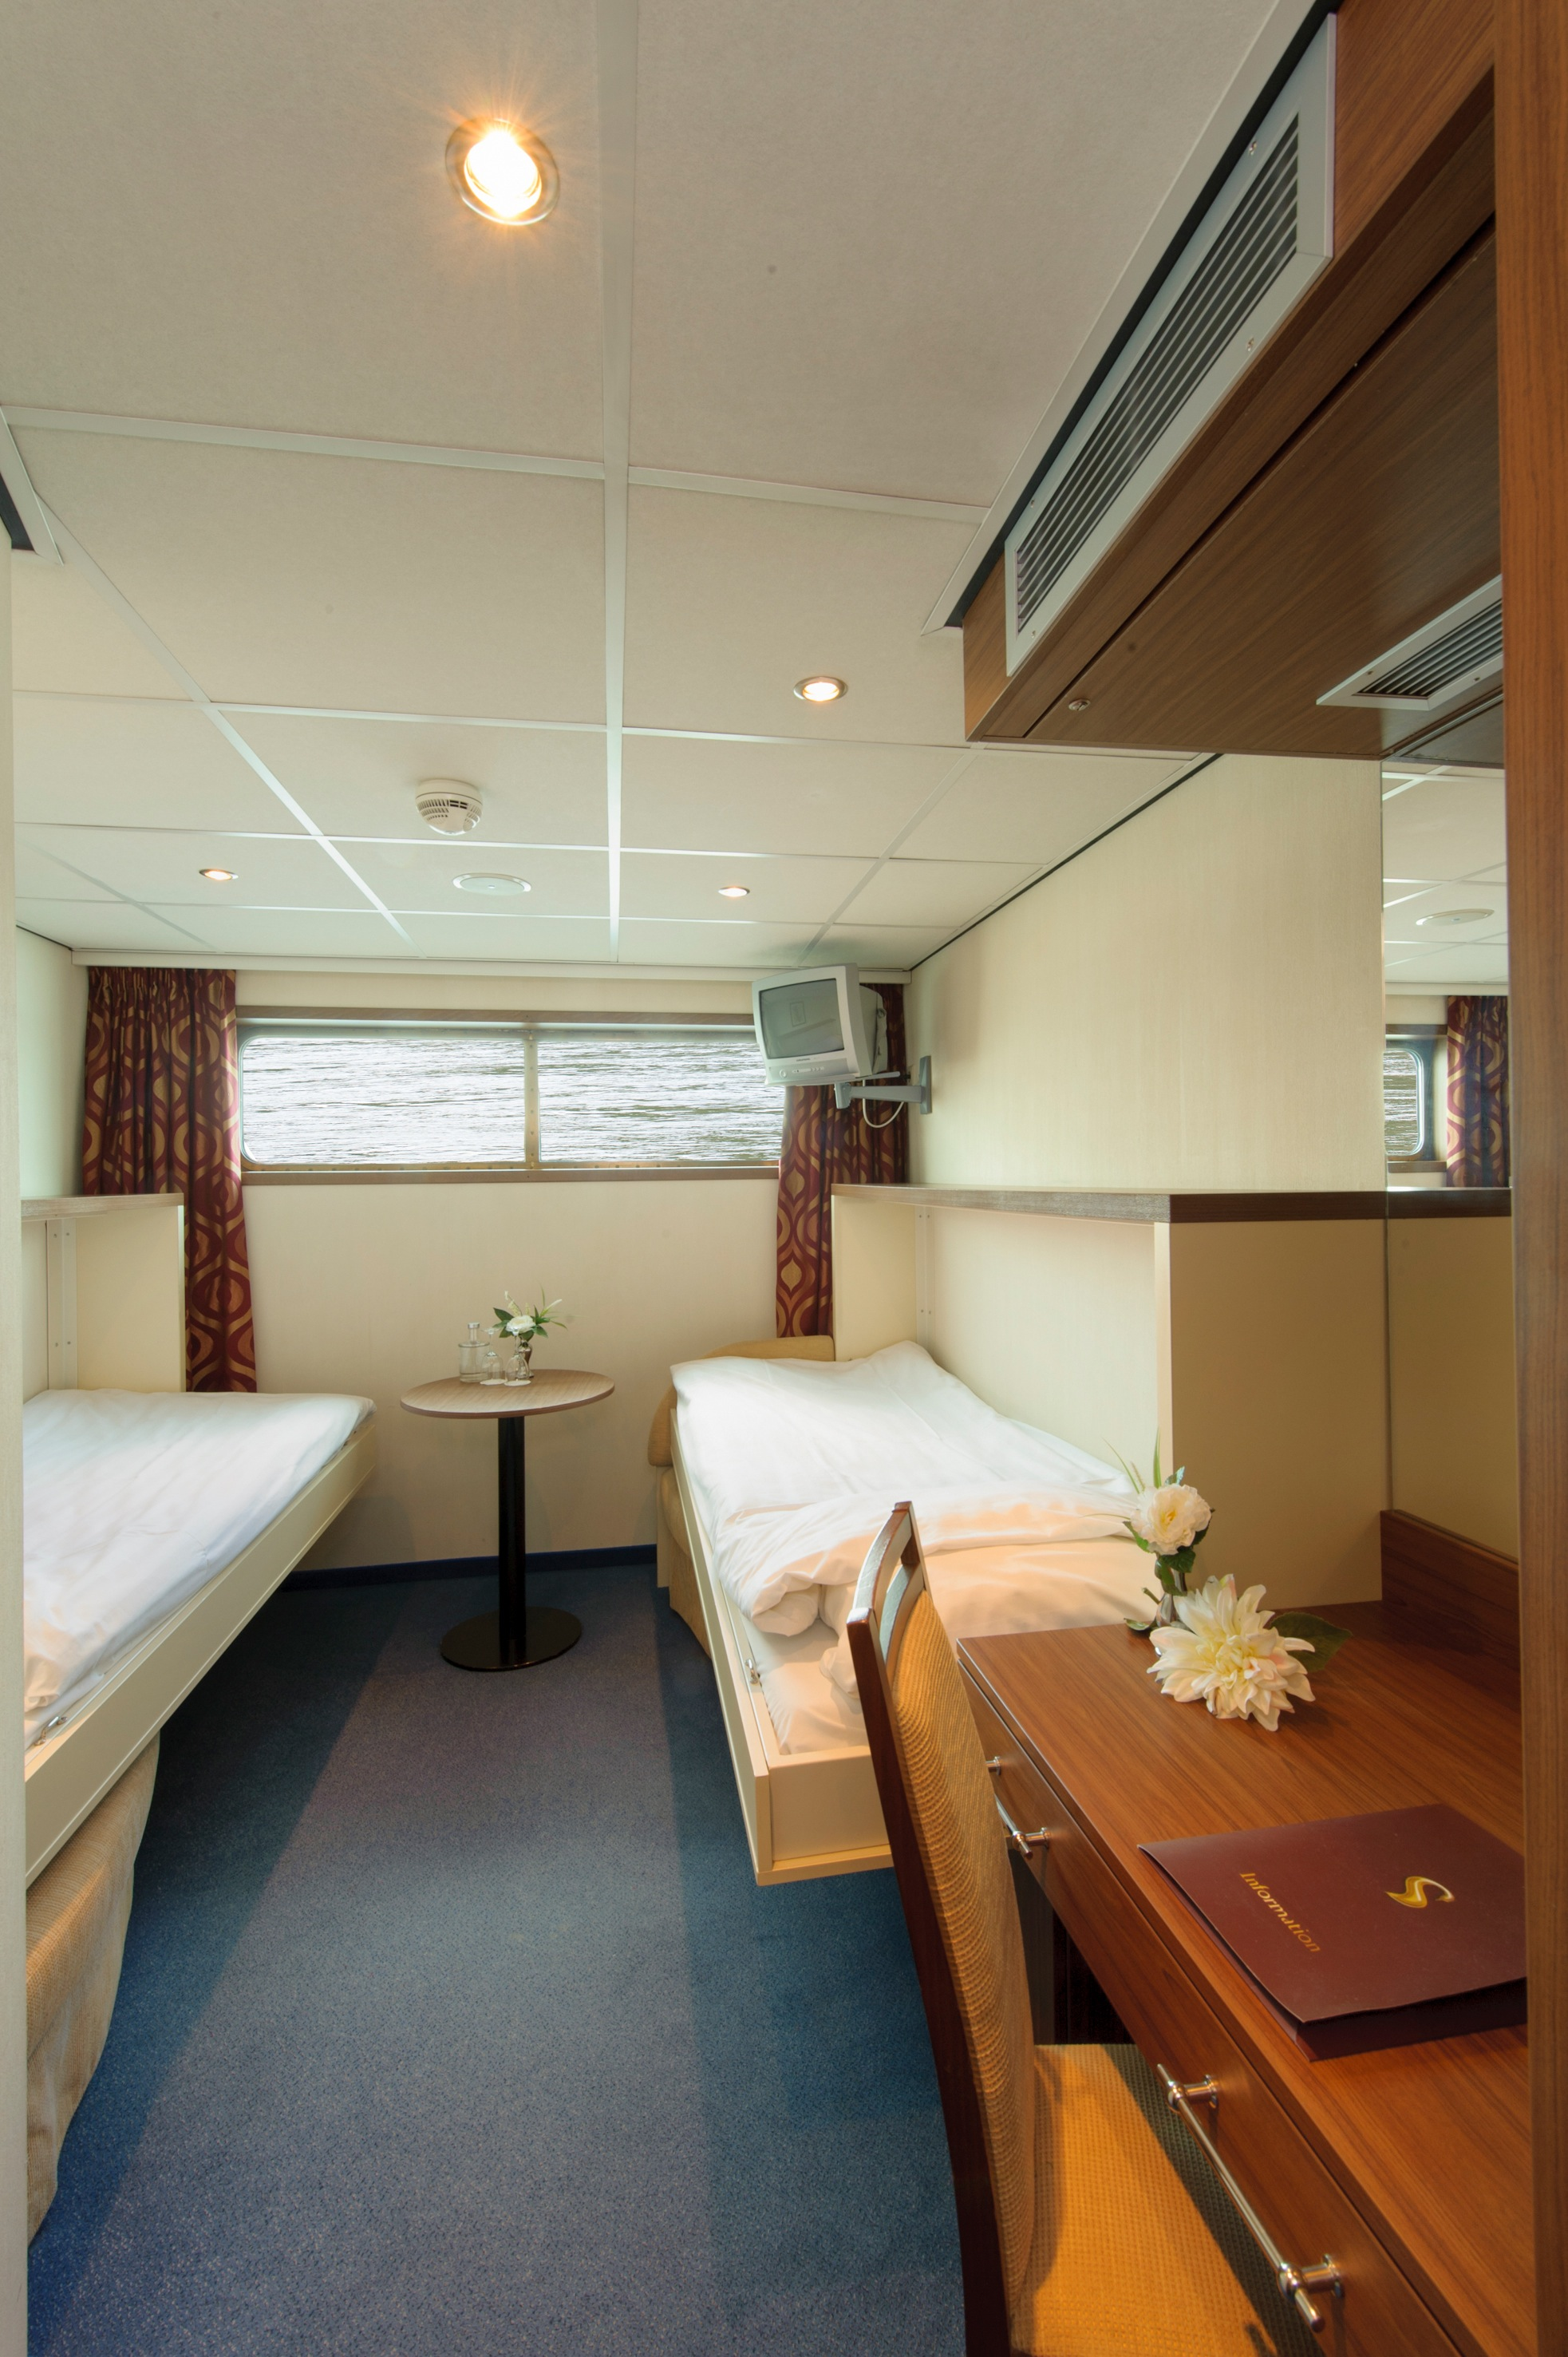 The River Cruise Line MS Serenity Accommodation Main Deck Cabin 1.jpg